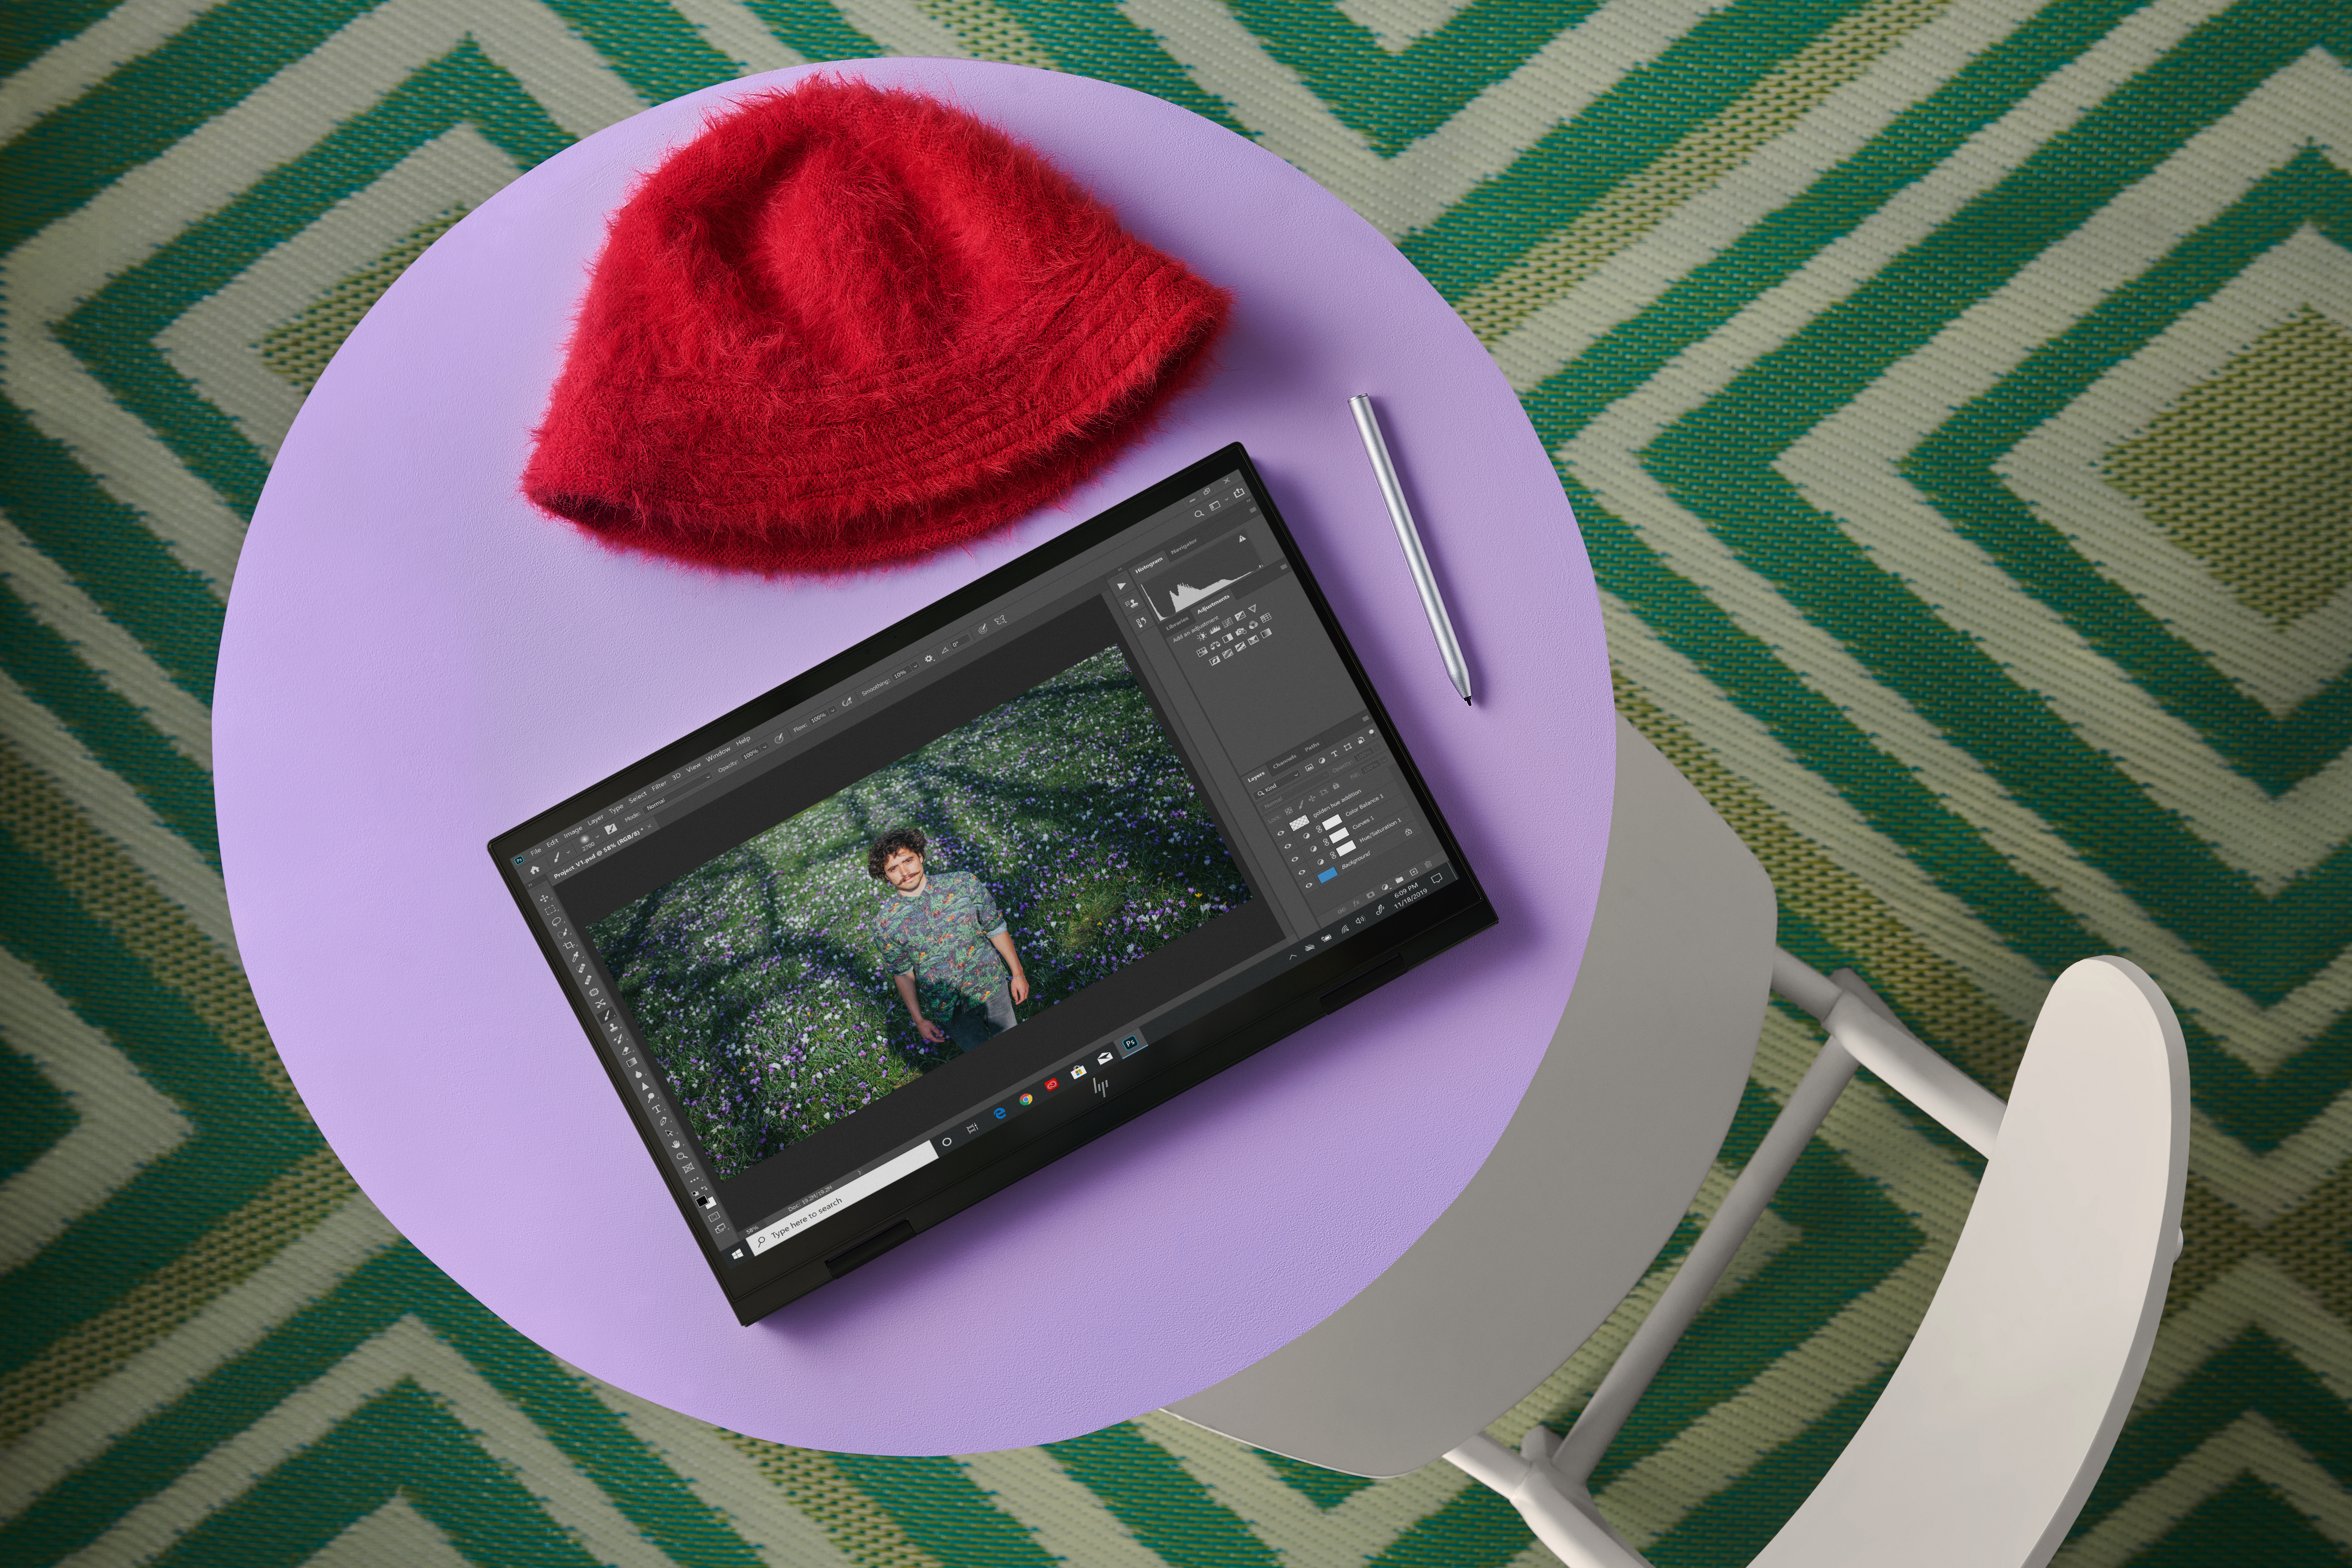 The HP Envy x360 15 in tablet mode on a purple desk. Above it is a red beanie and to its right is a stylus. The screen displays a photo editing software. The carpet has a green square pattern.